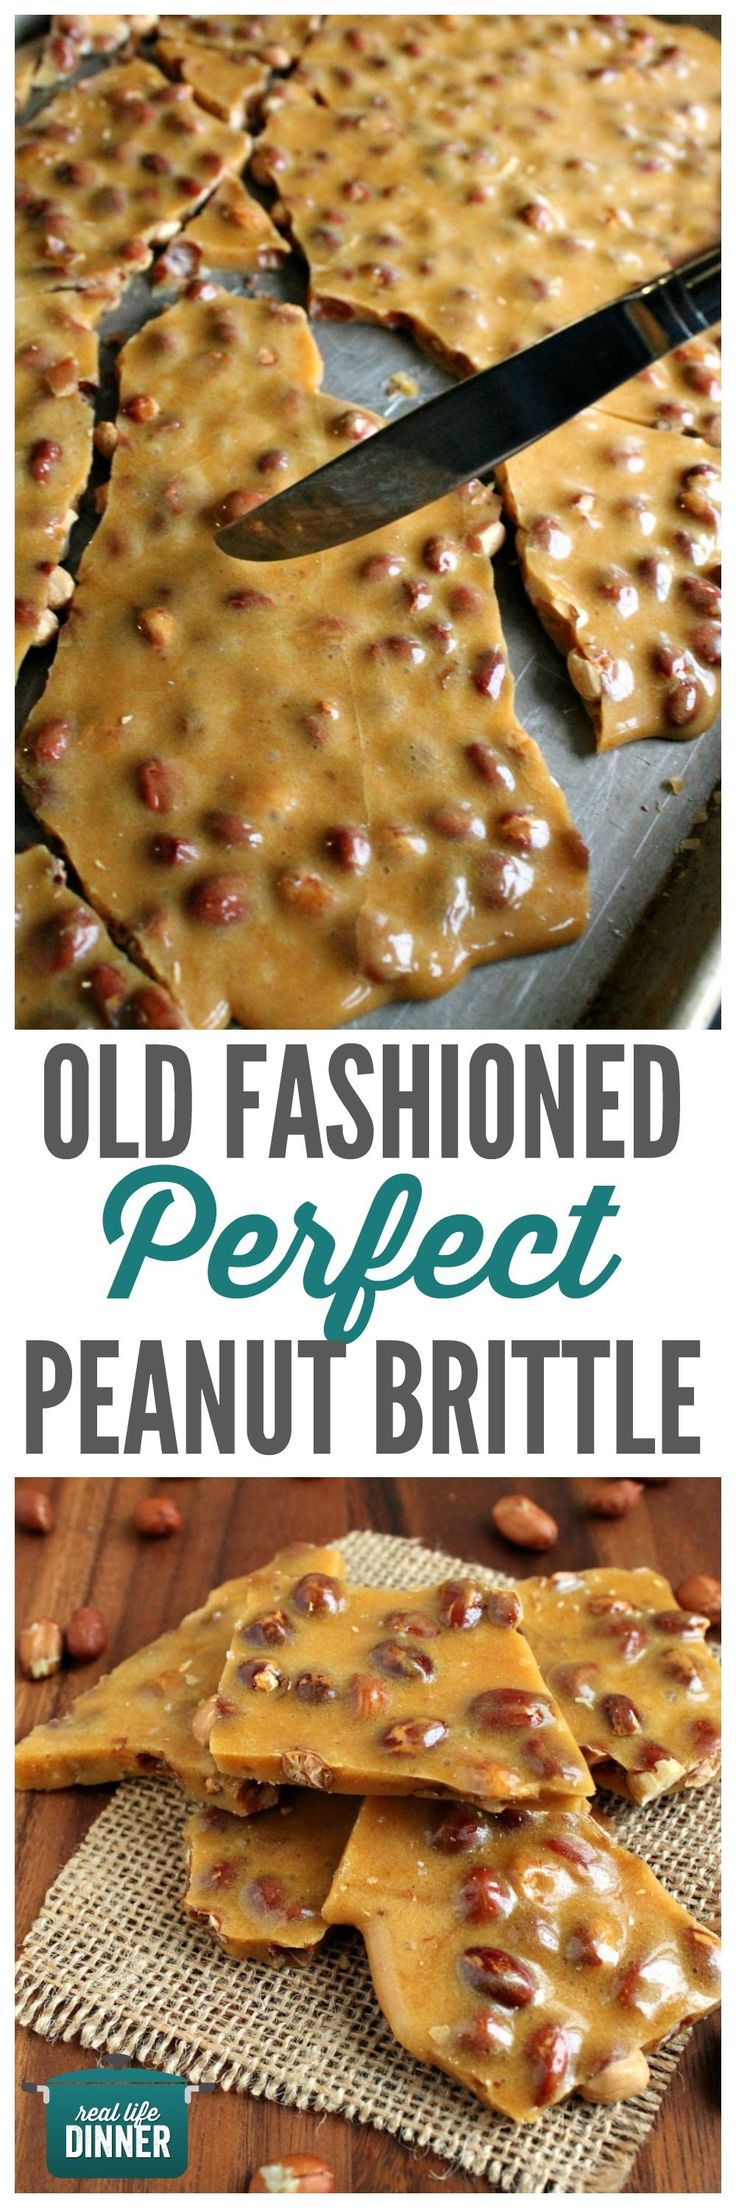 Mom's Best Peanut Brittle Recipe